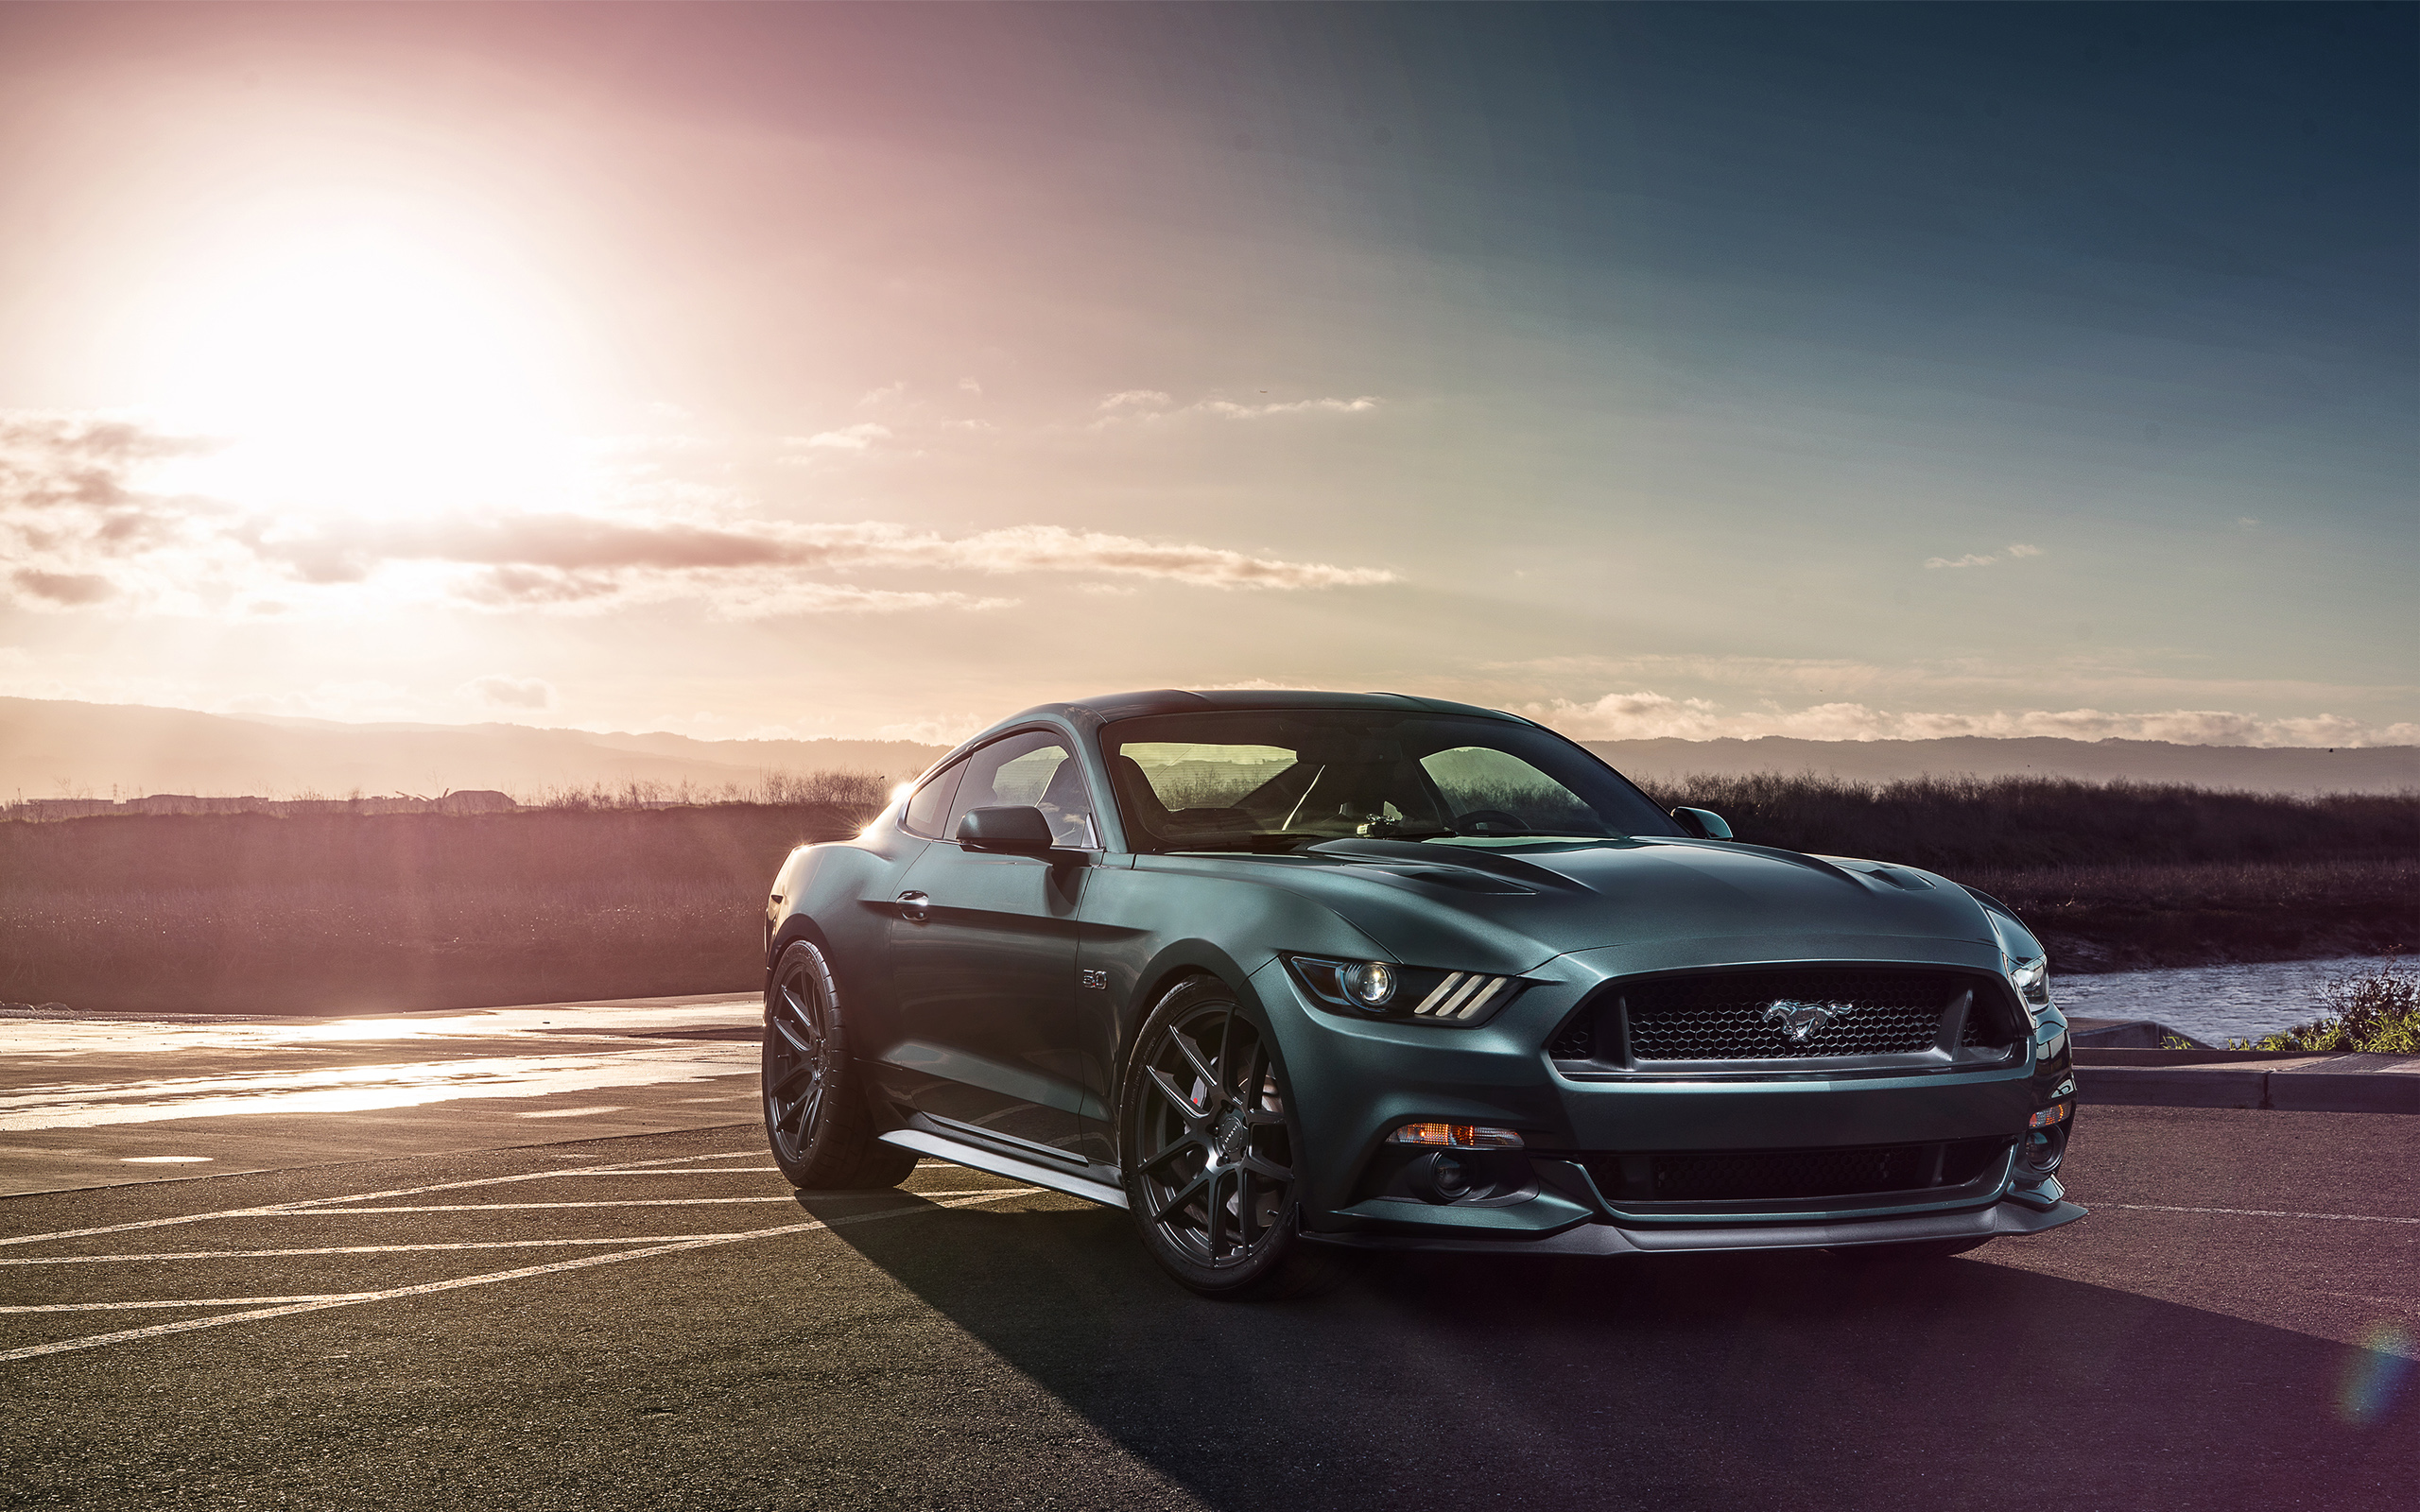 2560x1600 - Ford Mustang GT Wallpapers 8